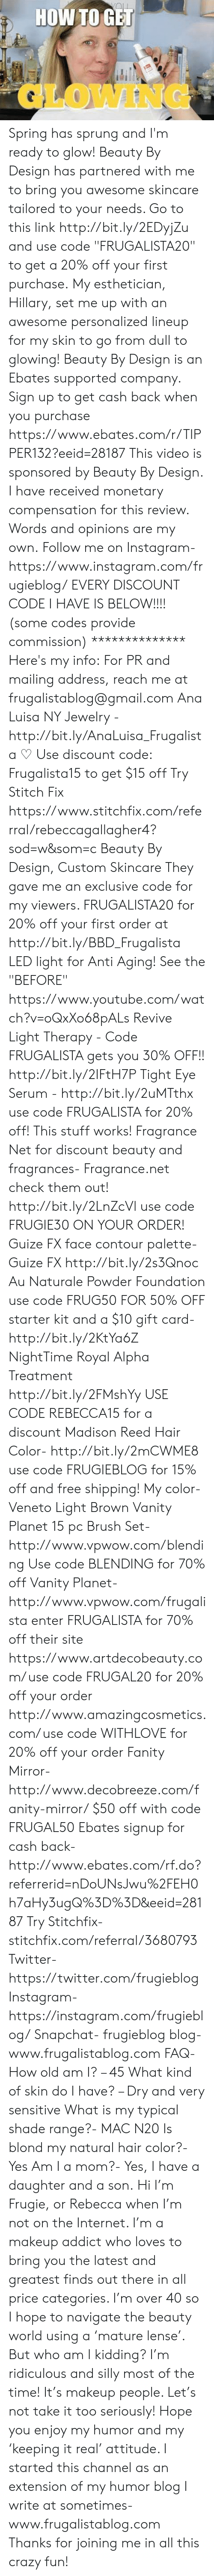 """Crazy, Instagram, and Internet: HOW TOGET  GLOWIN Spring has sprung and I'm ready to glow! Beauty By Design has partnered with me to bring you awesome skincare tailored to your needs. Go to this link http://bit.ly/2EDyjZu and use code """"FRUGALISTA20"""" to get a 20% off your first purchase. My esthetician, Hillary, set me up with an awesome personalized lineup for my skin to go from dull to glowing!  Beauty By Design is an Ebates supported company. Sign up to get cash back when you purchase https://www.ebates.com/r/TIPPER132?eeid=28187  This video is sponsored by Beauty By Design. I have received monetary compensation for this review. Words and opinions are my own.  Follow me on Instagram- https://www.instagram.com/frugieblog/  EVERY DISCOUNT CODE I HAVE IS BELOW!!!! (some codes provide commission) **************  Here's my info: For PR and mailing address, reach me at  frugalistablog@gmail.com  Ana Luisa NY Jewelry - http://bit.ly/AnaLuisa_Frugalista ♡ Use discount code: Frugalista15 to get $15 off  Try Stitch Fix https://www.stitchfix.com/referral/rebeccagallagher4?sod=w&som=c  Beauty By Design, Custom Skincare  They gave me an exclusive code for my viewers.  FRUGALISTA20 for 20% off your first order at http://bit.ly/BBD_Frugalista  LED light for Anti Aging! See the """"BEFORE"""" https://www.youtube.com/watch?v=oQxXo68pALs Revive Light Therapy - Code FRUGALISTA gets you 30% OFF!! http://bit.ly/2IFtH7P  Tight Eye Serum - http://bit.ly/2uMTthx use code FRUGALISTA for 20% off! This stuff works!  Fragrance Net for discount beauty and fragrances-  Fragrance.net check them out! http://bit.ly/2LnZcVl use code FRUGIE30 ON YOUR ORDER!  Guize FX face contour palette- Guize FX http://bit.ly/2s3Qnoc  Au Naturale Powder Foundation use code FRUG50 FOR 50% OFF  starter kit and a $10 gift card- http://bit.ly/2KtYa6Z  NightTime Royal Alpha Treatment http://bit.ly/2FMshYy USE CODE REBECCA15 for a discount  Madison Reed Hair Color- http://bit.ly/2mCWME8 use code FRUGIEBLOG for 15% off and fr"""